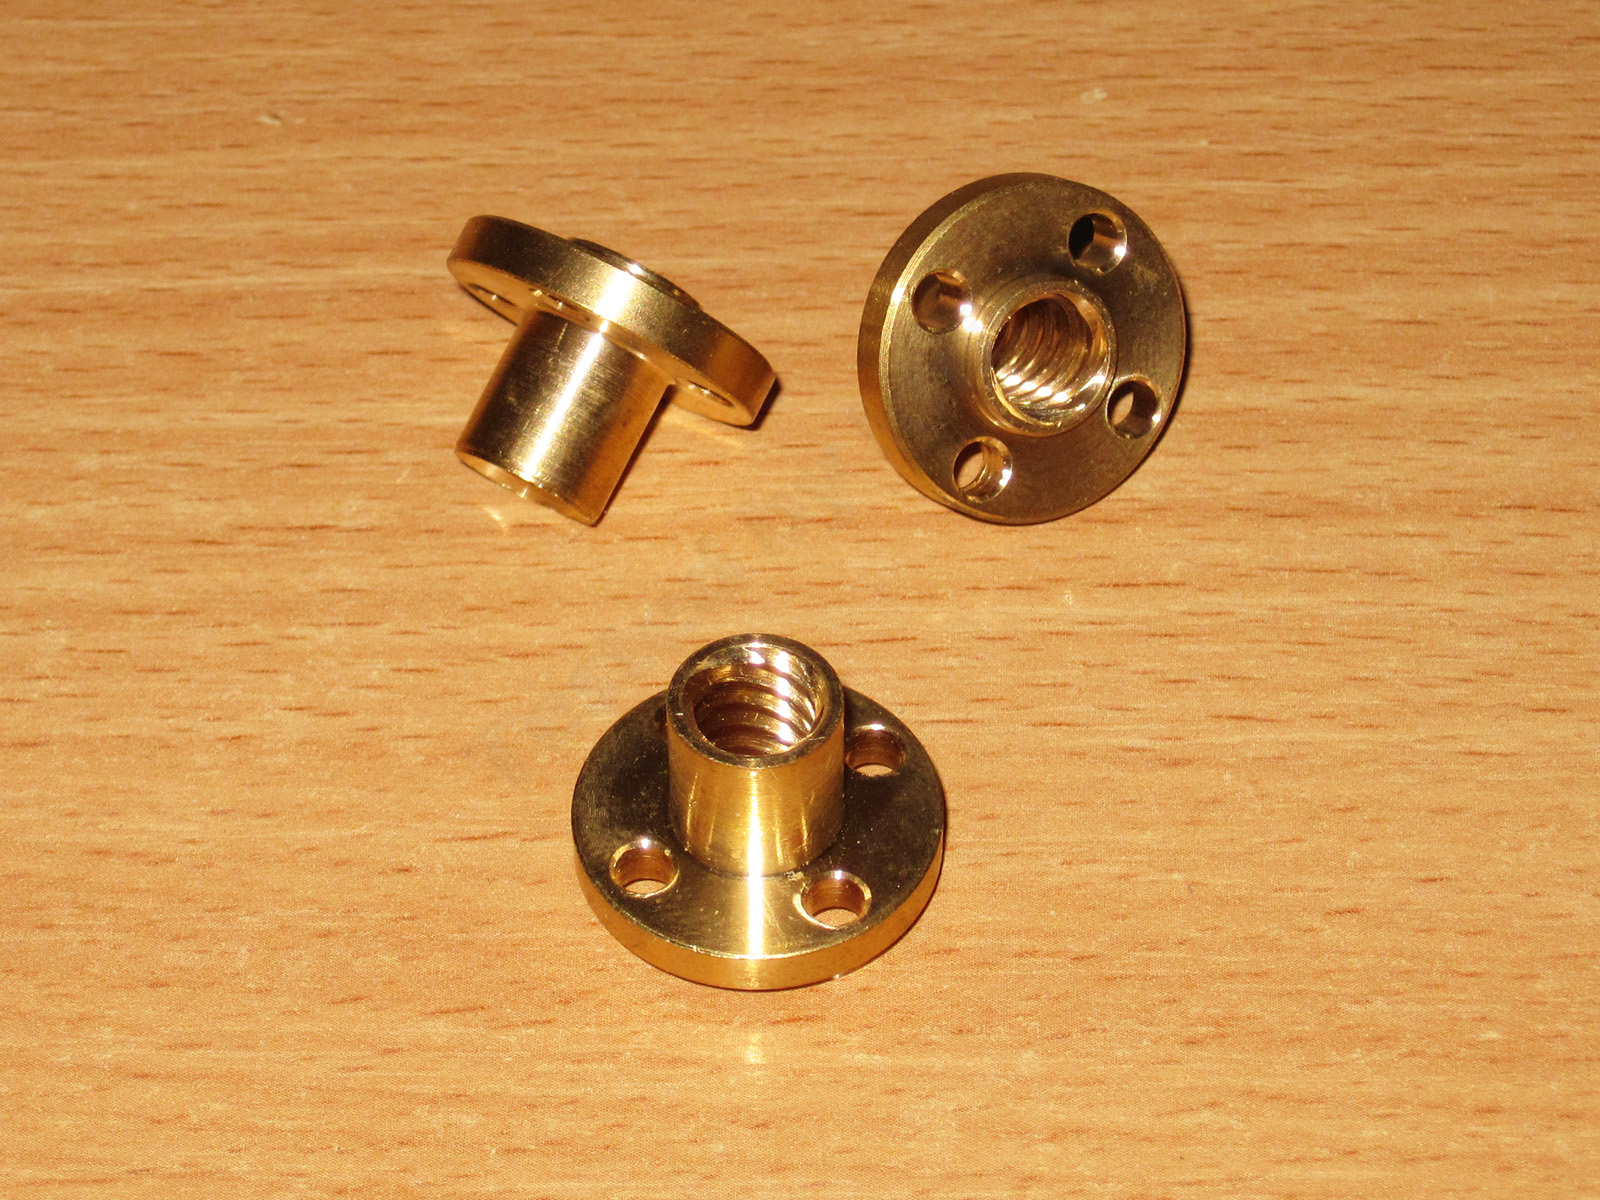 Picture of Lead Screws Part 5